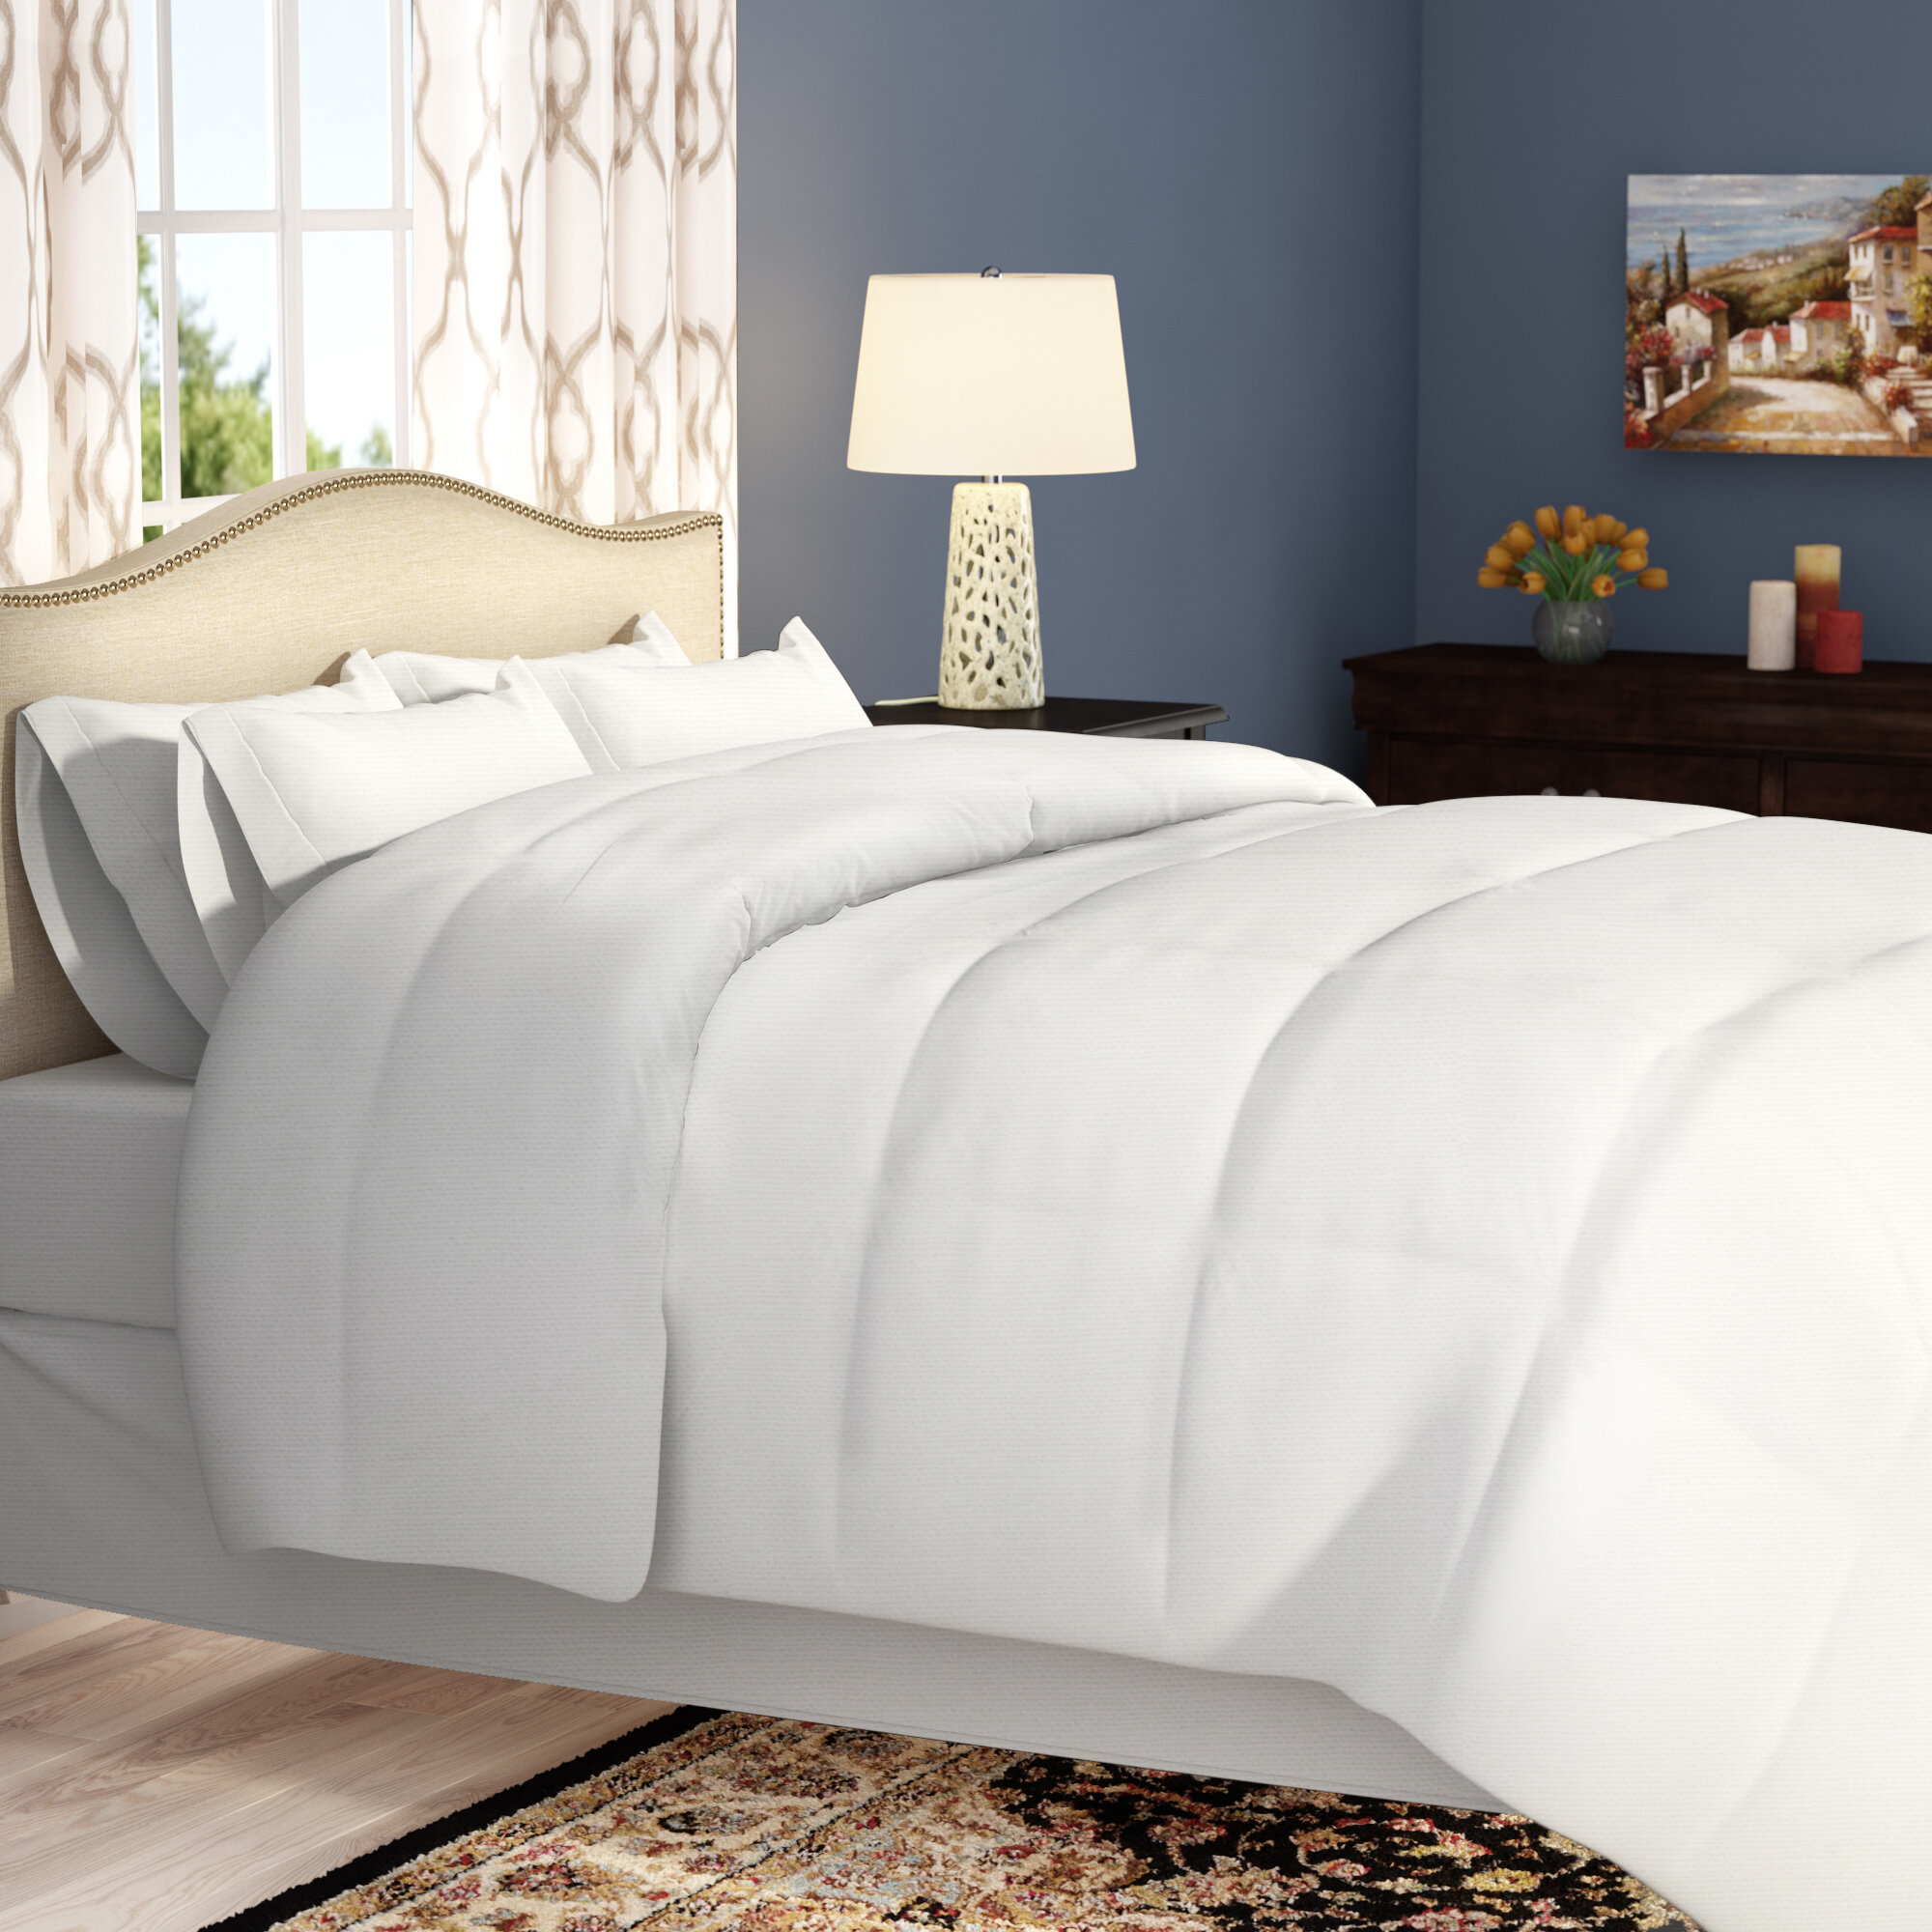 hei spin prod a serta qlt level p to buy how white comforter down wid